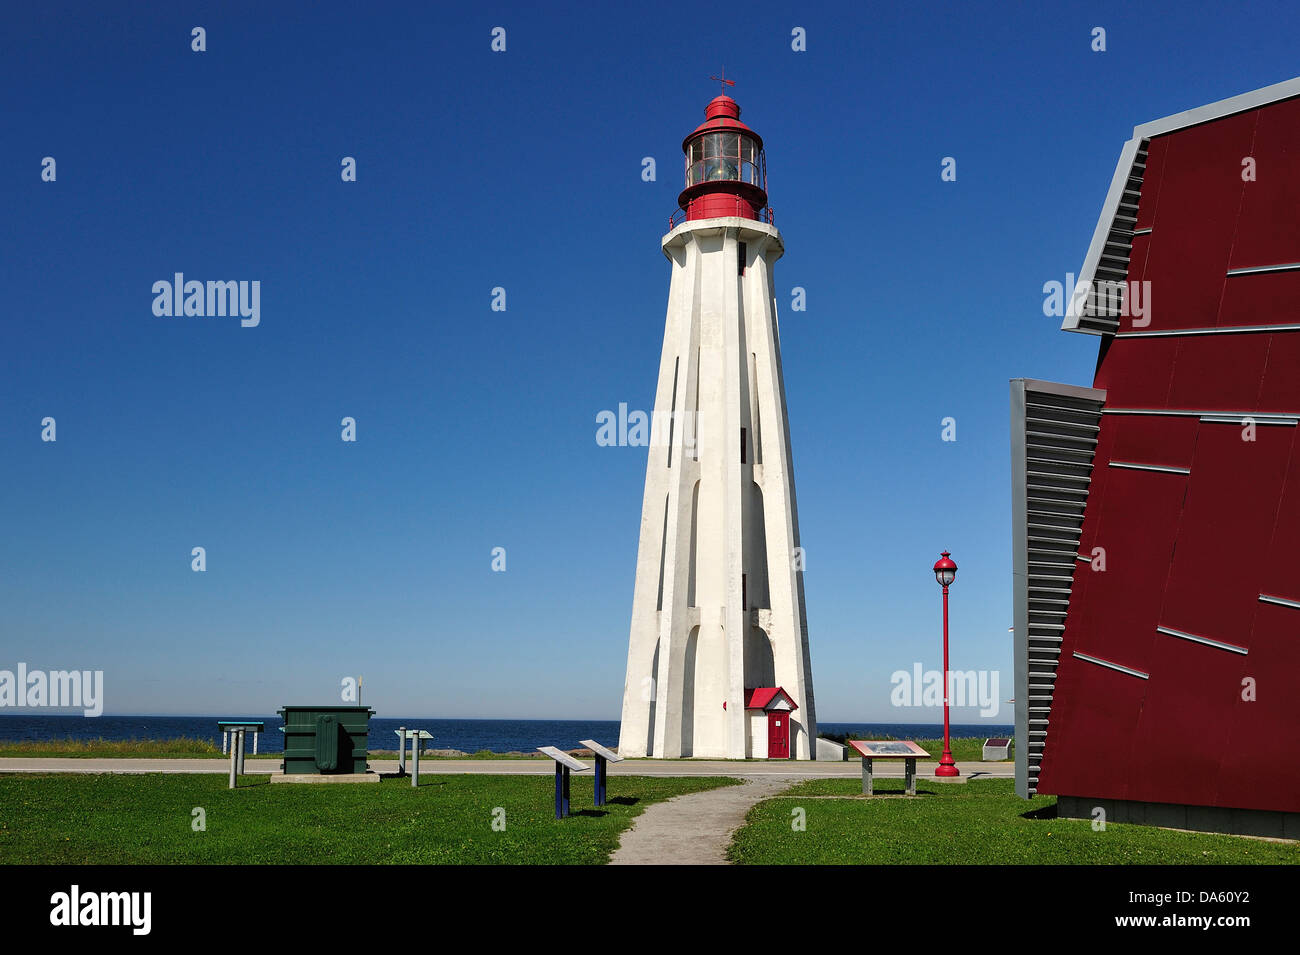 Canada, Lighthouse, Pointe au Pere, Rimouski, architecture, daytime, red, summer, Quebec, building, inclined - Stock Image